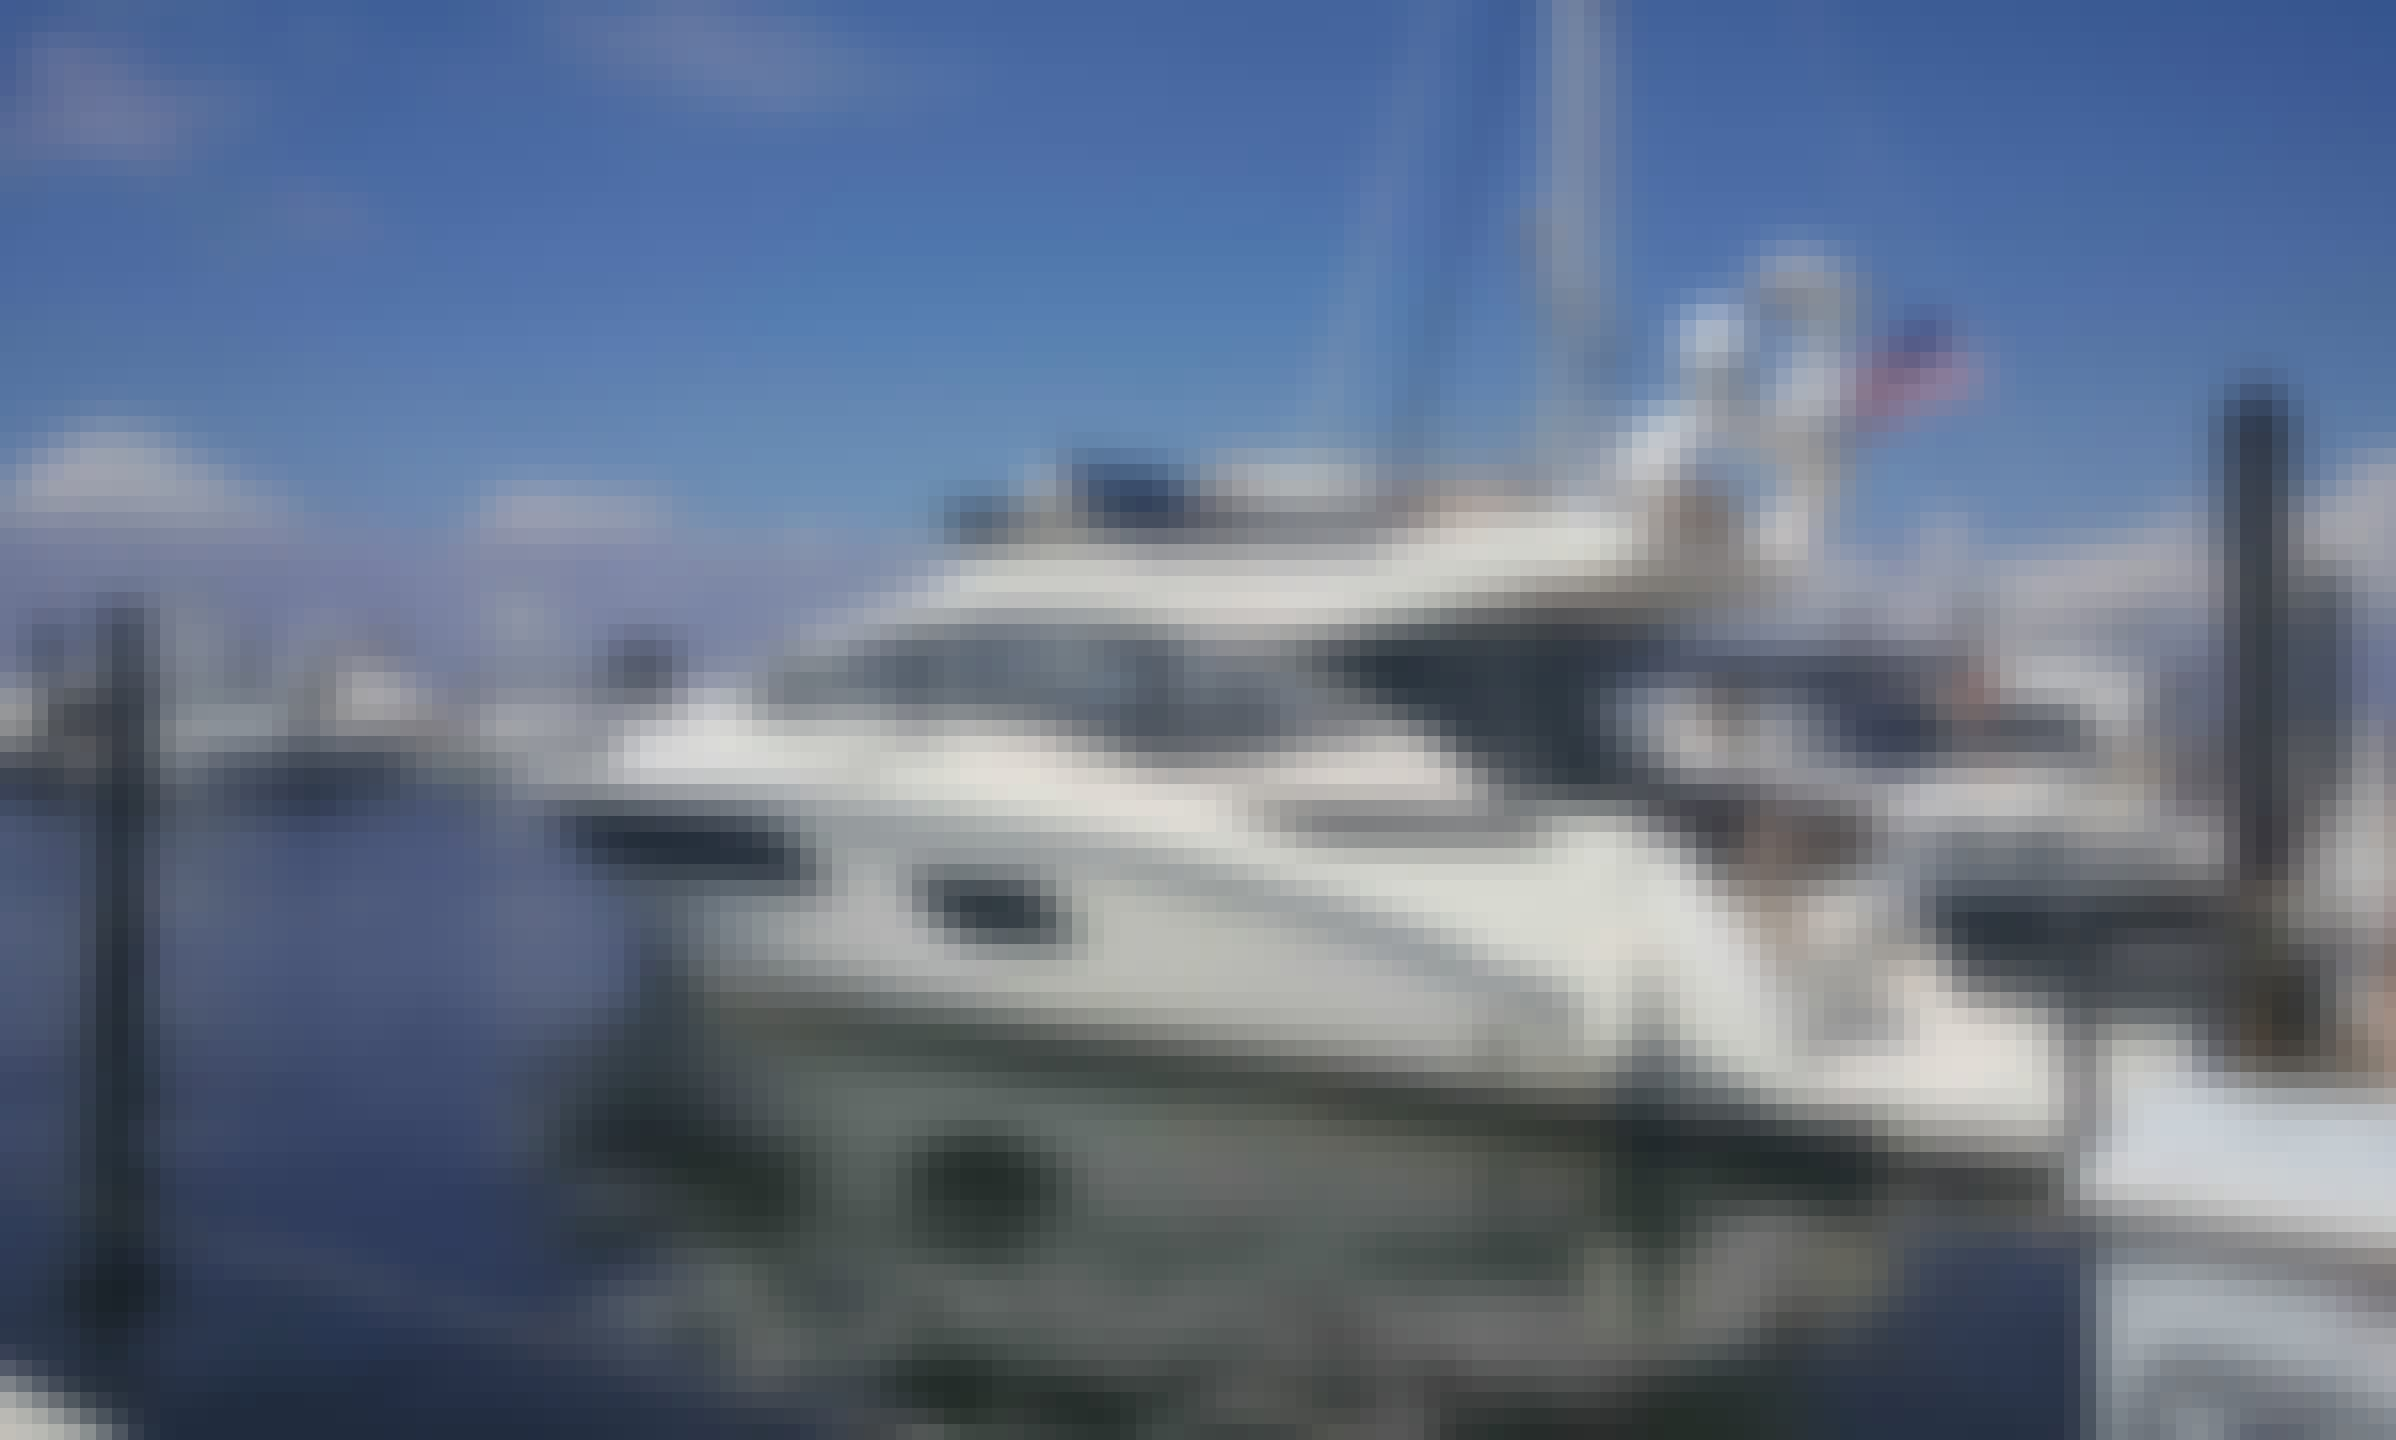 2019 45' Motor Yacht Charter for 12 People in New York